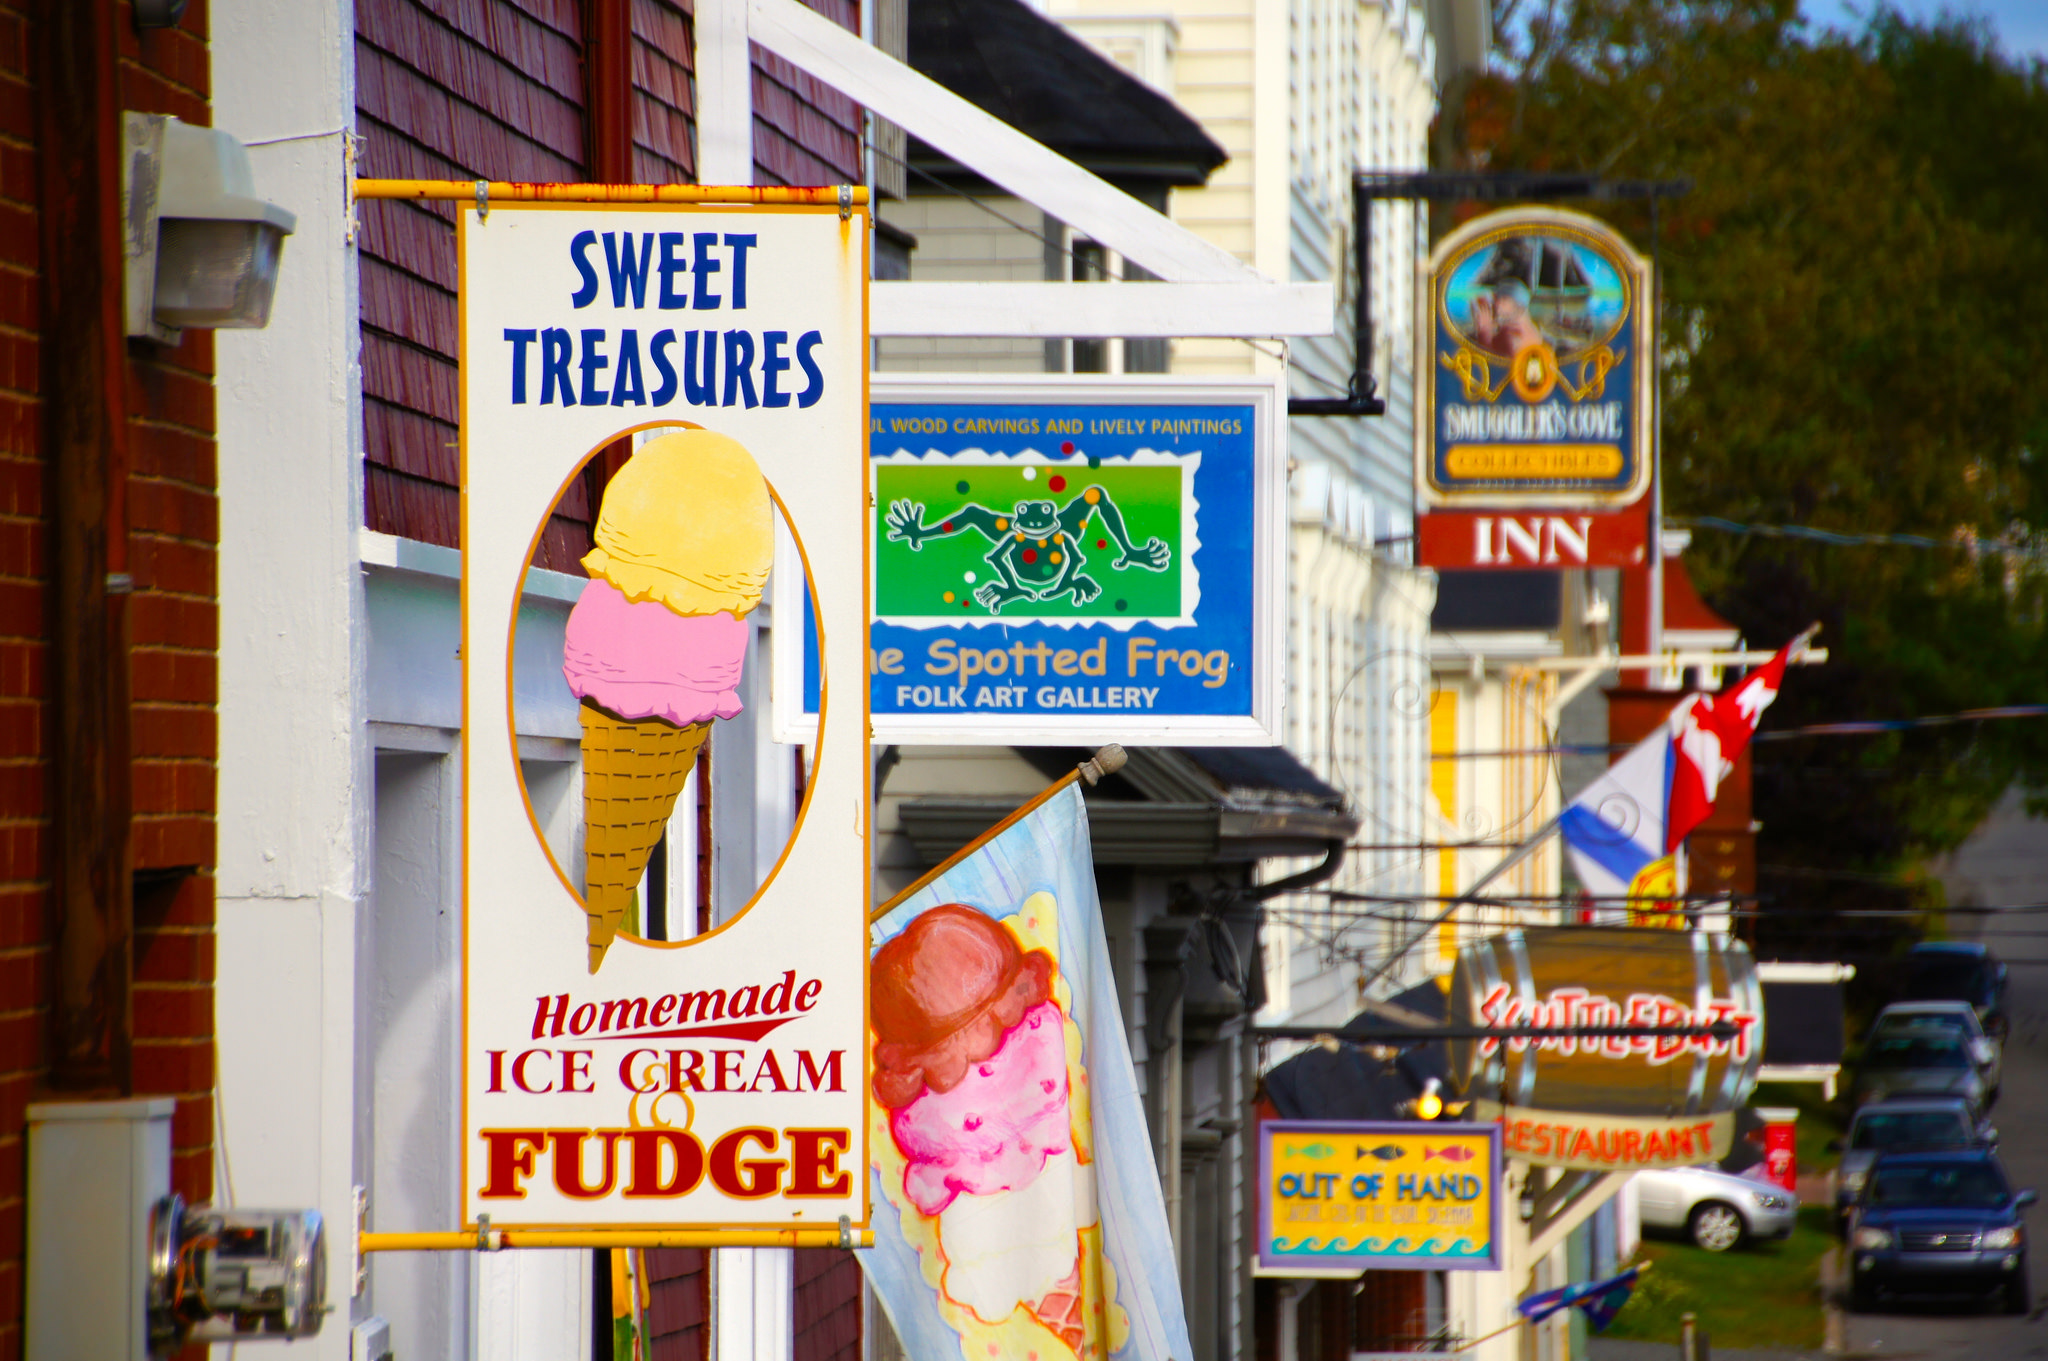 Businesses_along_the_north_side_of_Montague_Street,_Lunenburg,_Nova_Scotia